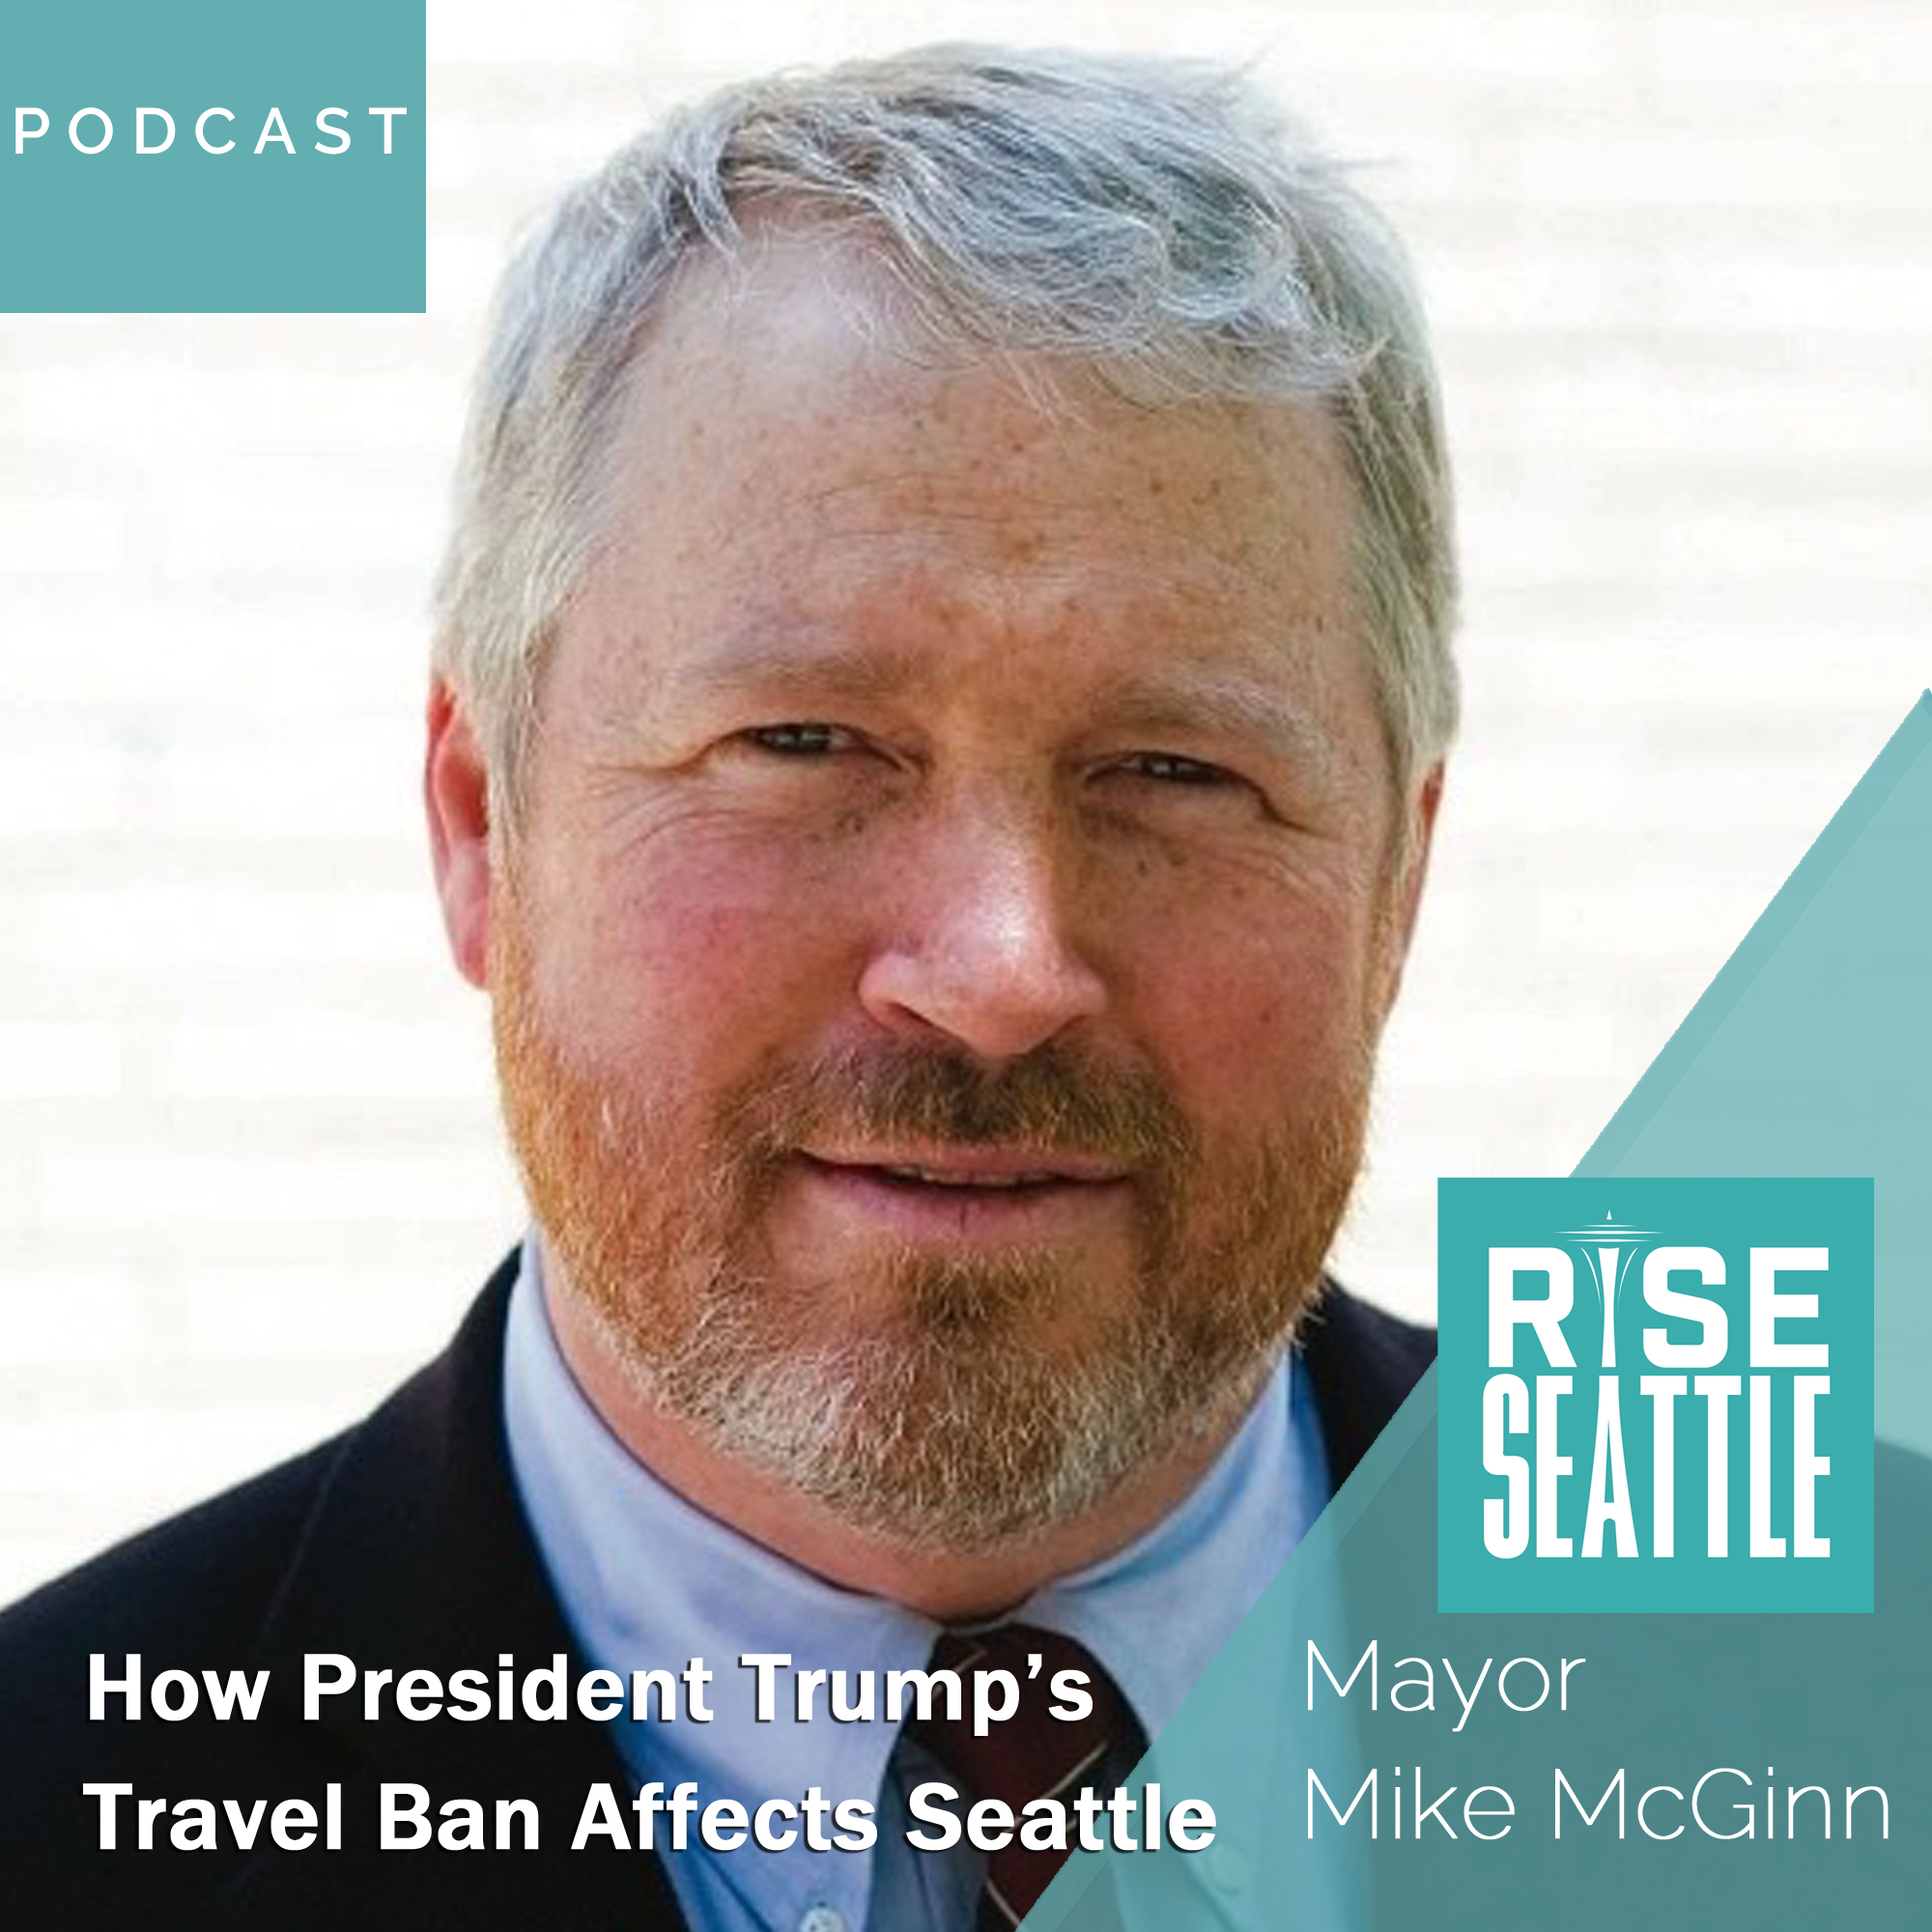 S1.E13. Mayor Mike McGinn: How President Trump's Travel Ban Affects Seattle